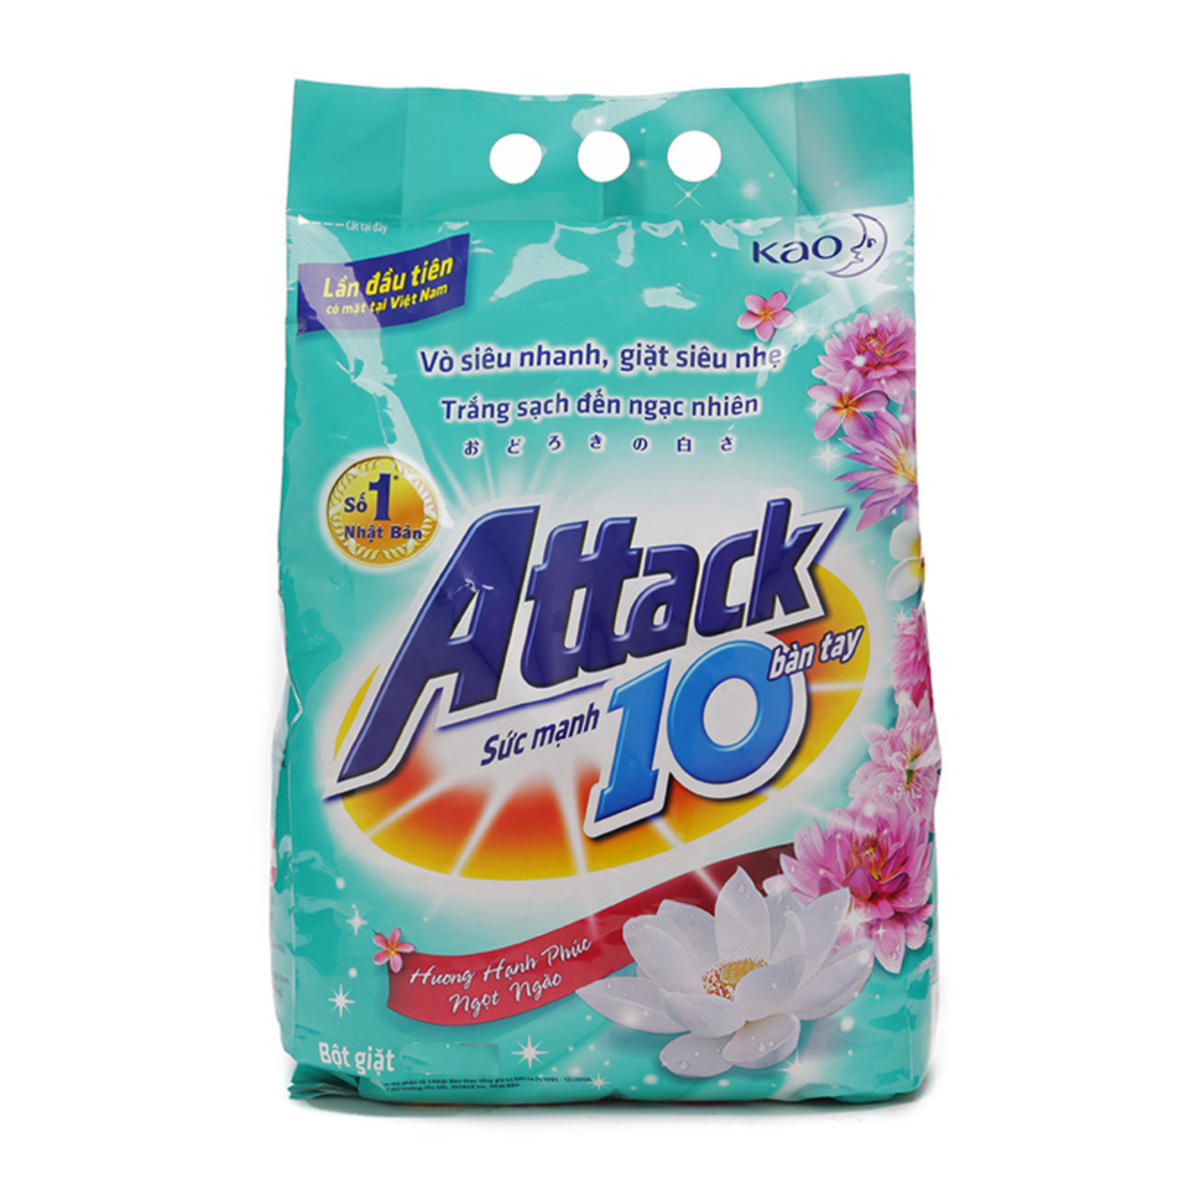 ATTACK WASHING POWDER SWEET HAPPINESS 4.1KG X 3 PACKS